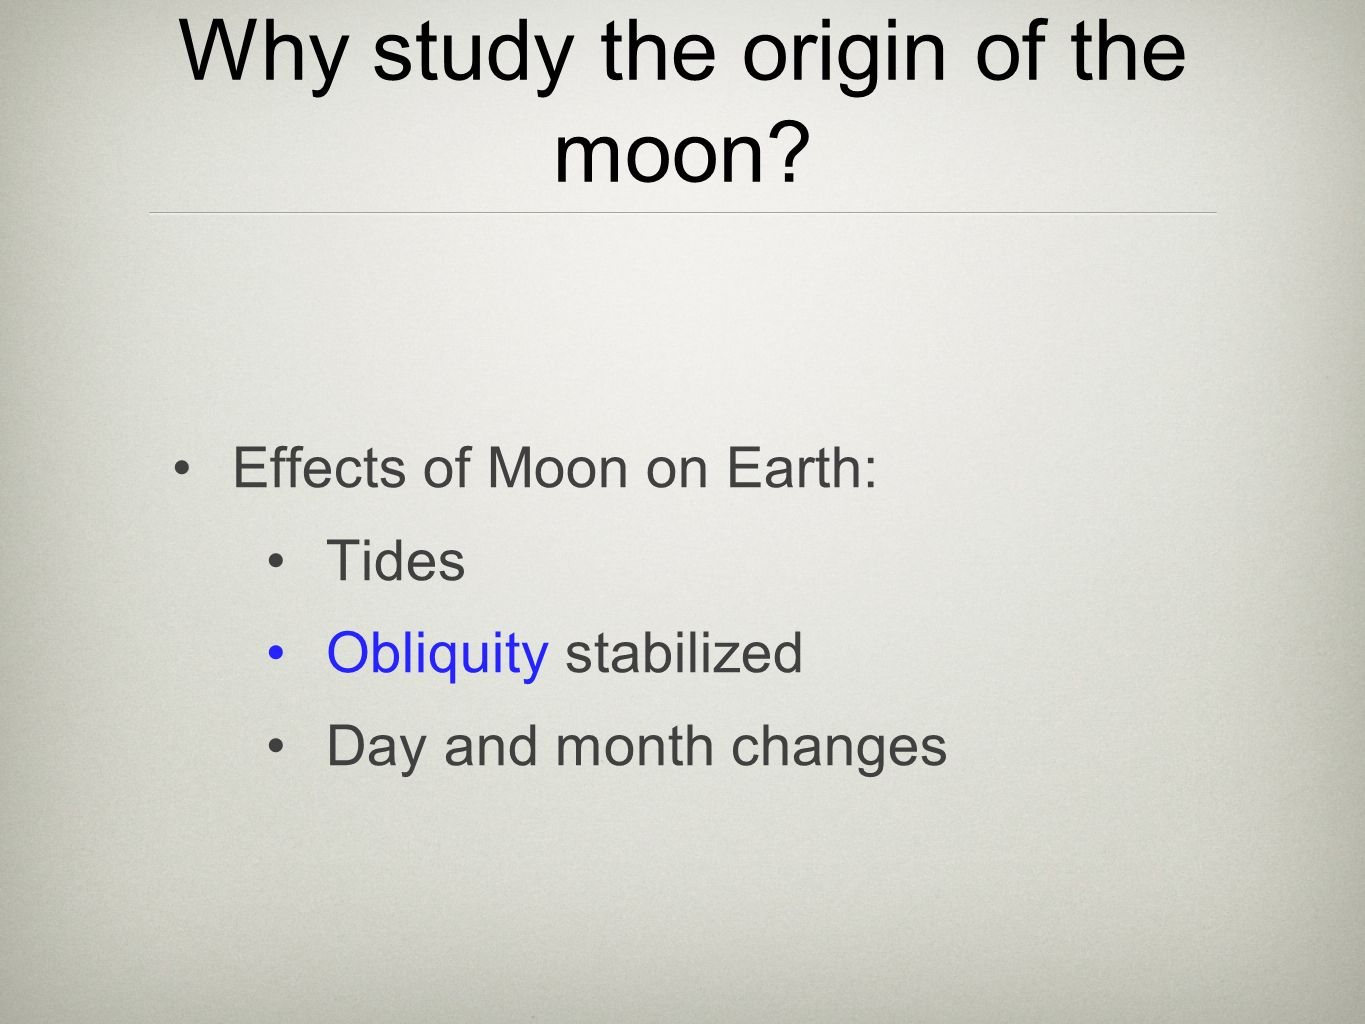 a study on the origin of the moon through the giant impact hypothesis New research supports popular belief that the moon formed after  this theory  says the moon formed after a nascent earth collided with a  this contradiction  has cast a long shadow on the giant-impact  the scientists determined that  three or four large planets survived the violent solar system formation.